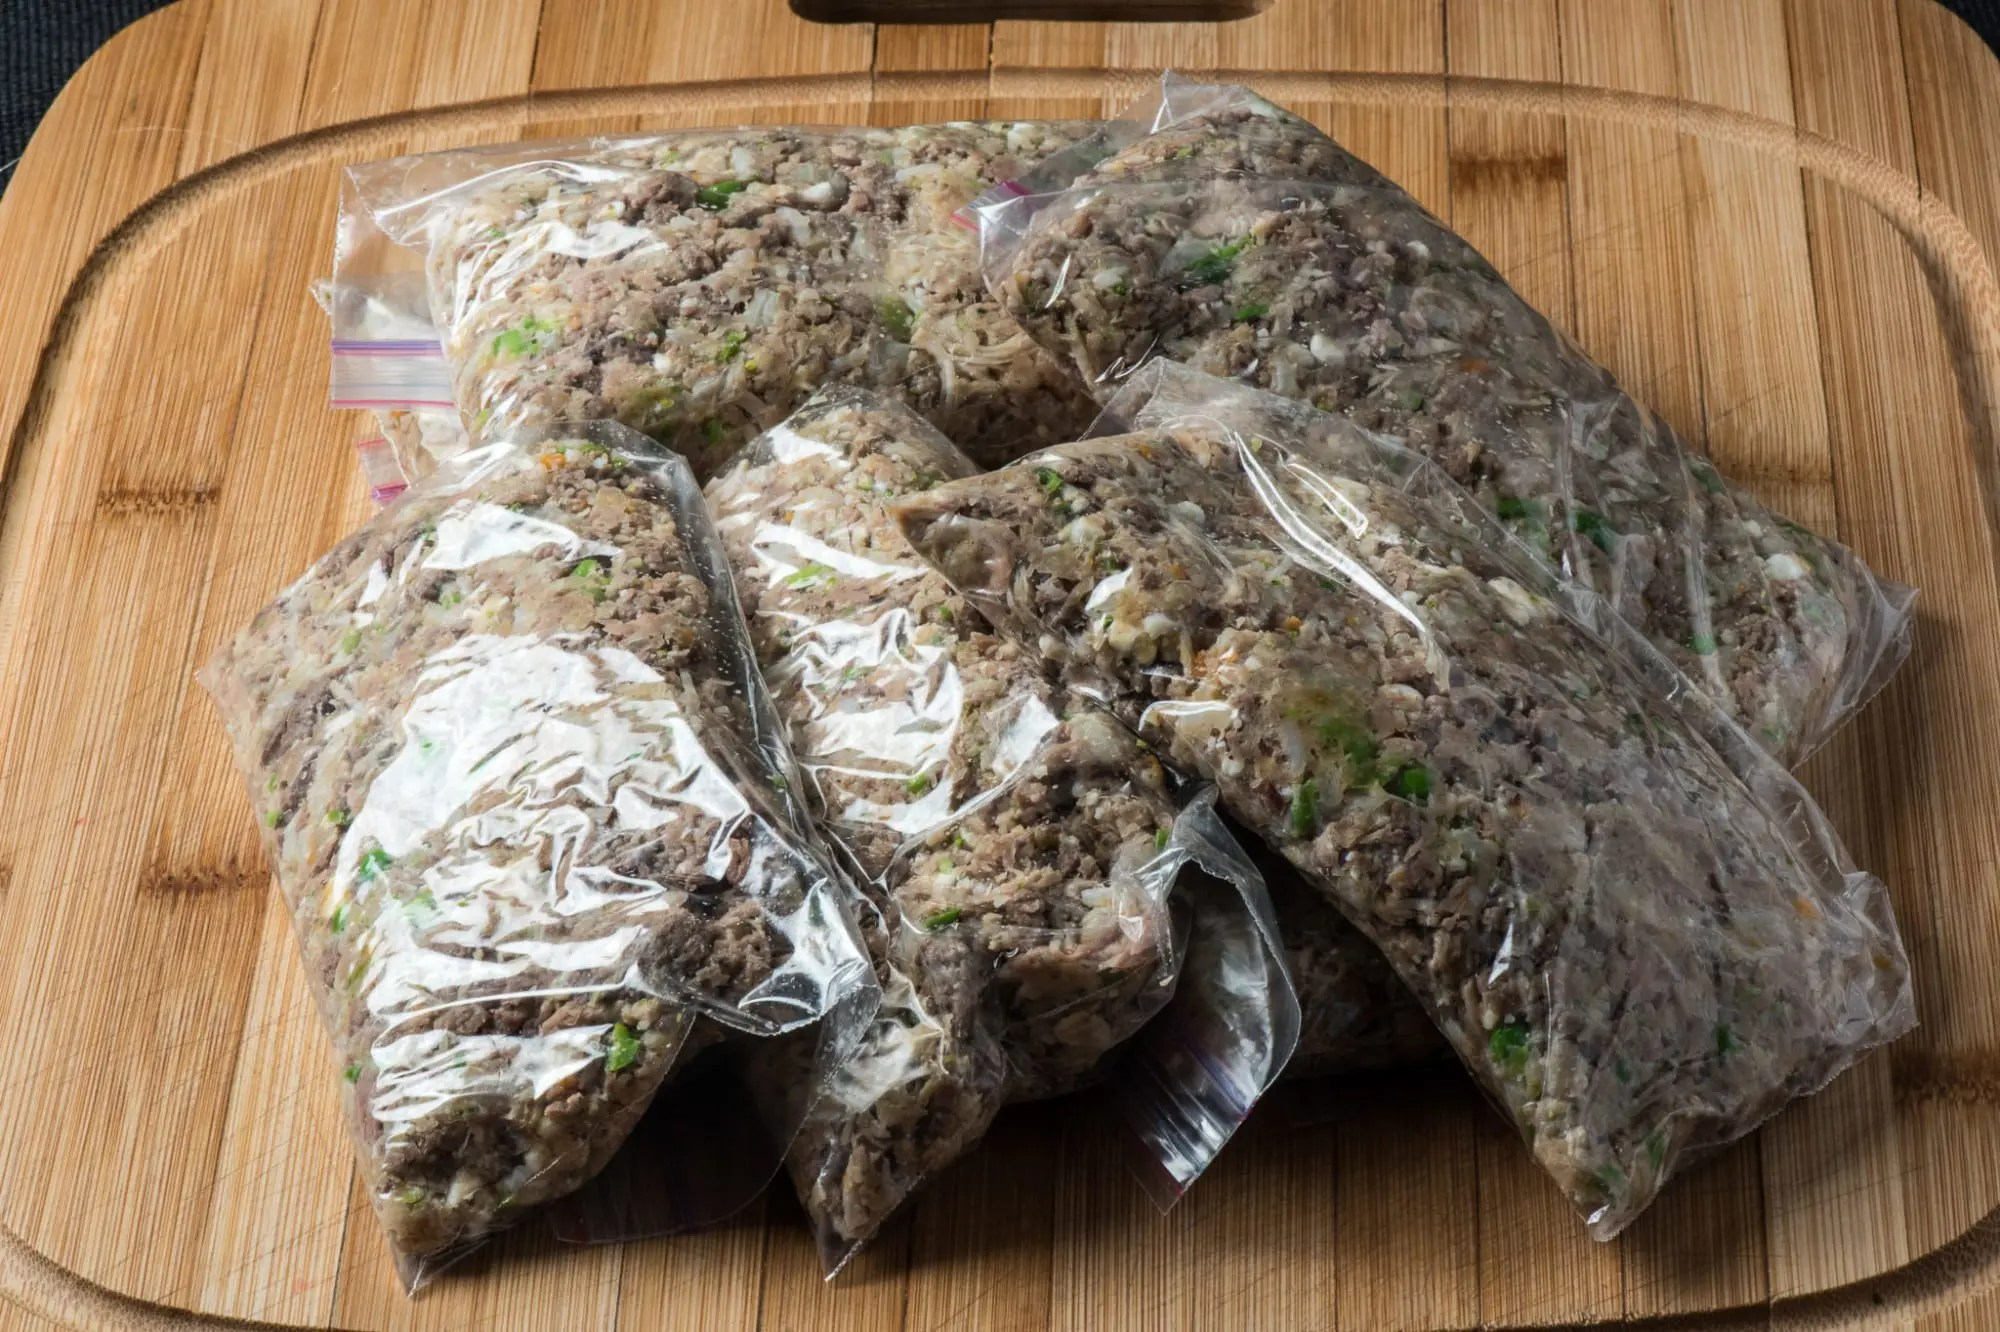 Healthy homemade dog food tasty low carb finished dog food ready for freezing forumfinder Choice Image